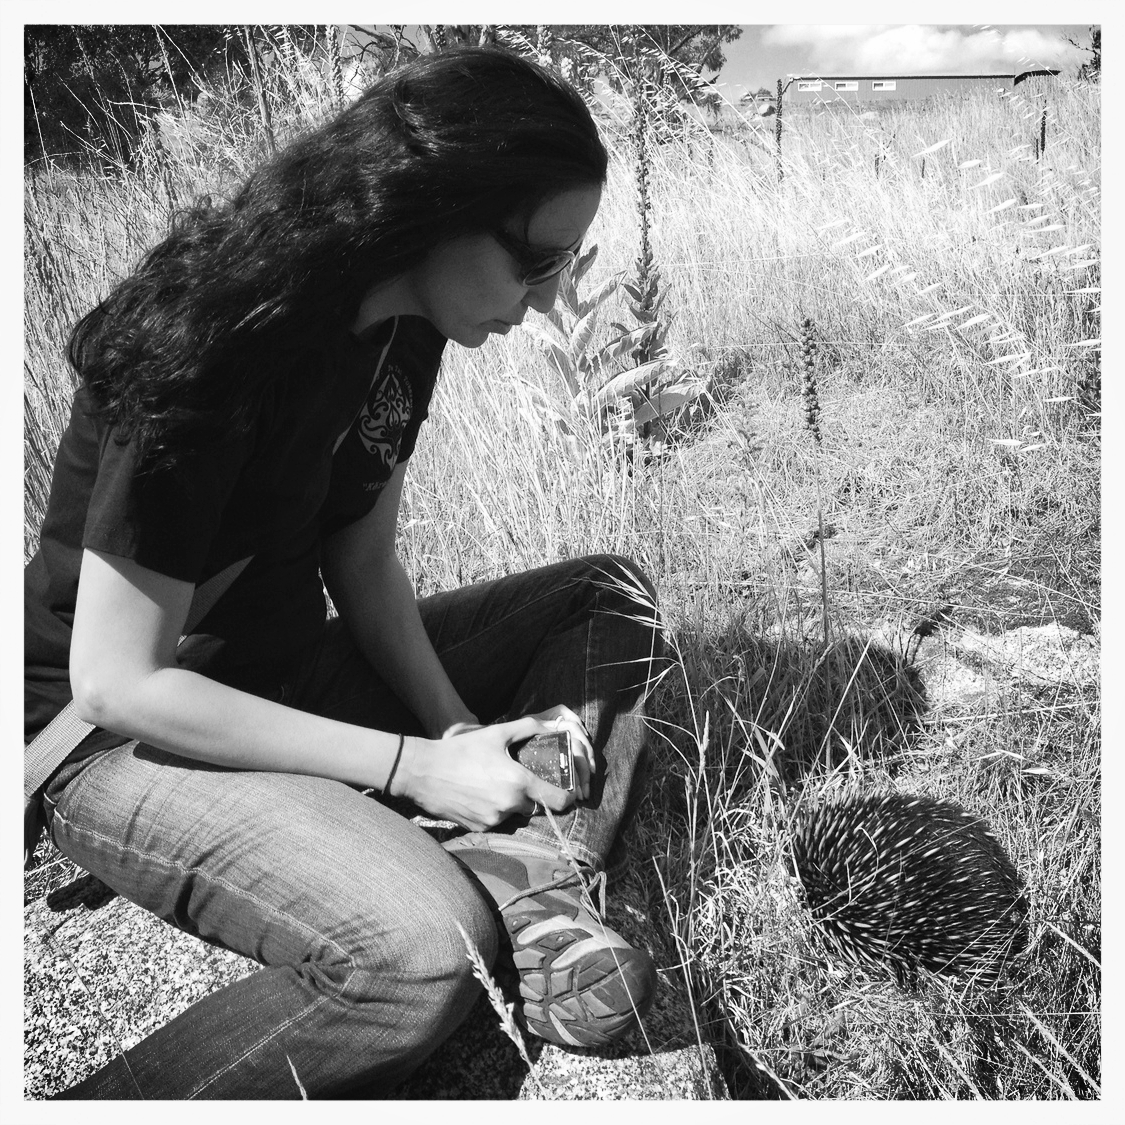 Giselle with  Tachyglossus aculeatus  (short-beaked echidna) near Jindabyne, NSW